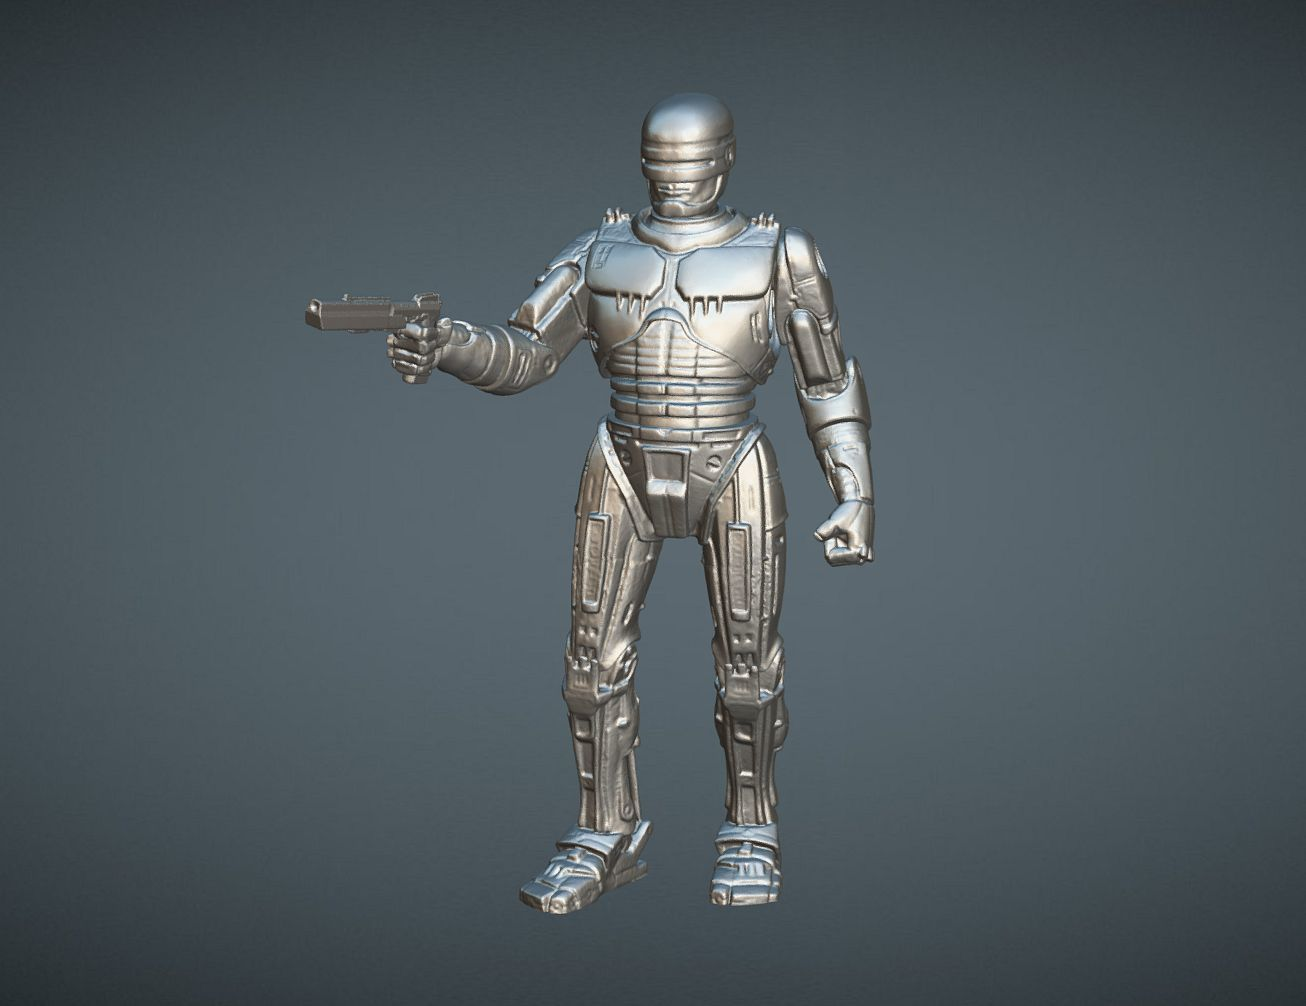 CAPTURE_005.jpg Download STL file ROBOCOP INSPIRITED FIGURE • Design to 3D print, Masterclip